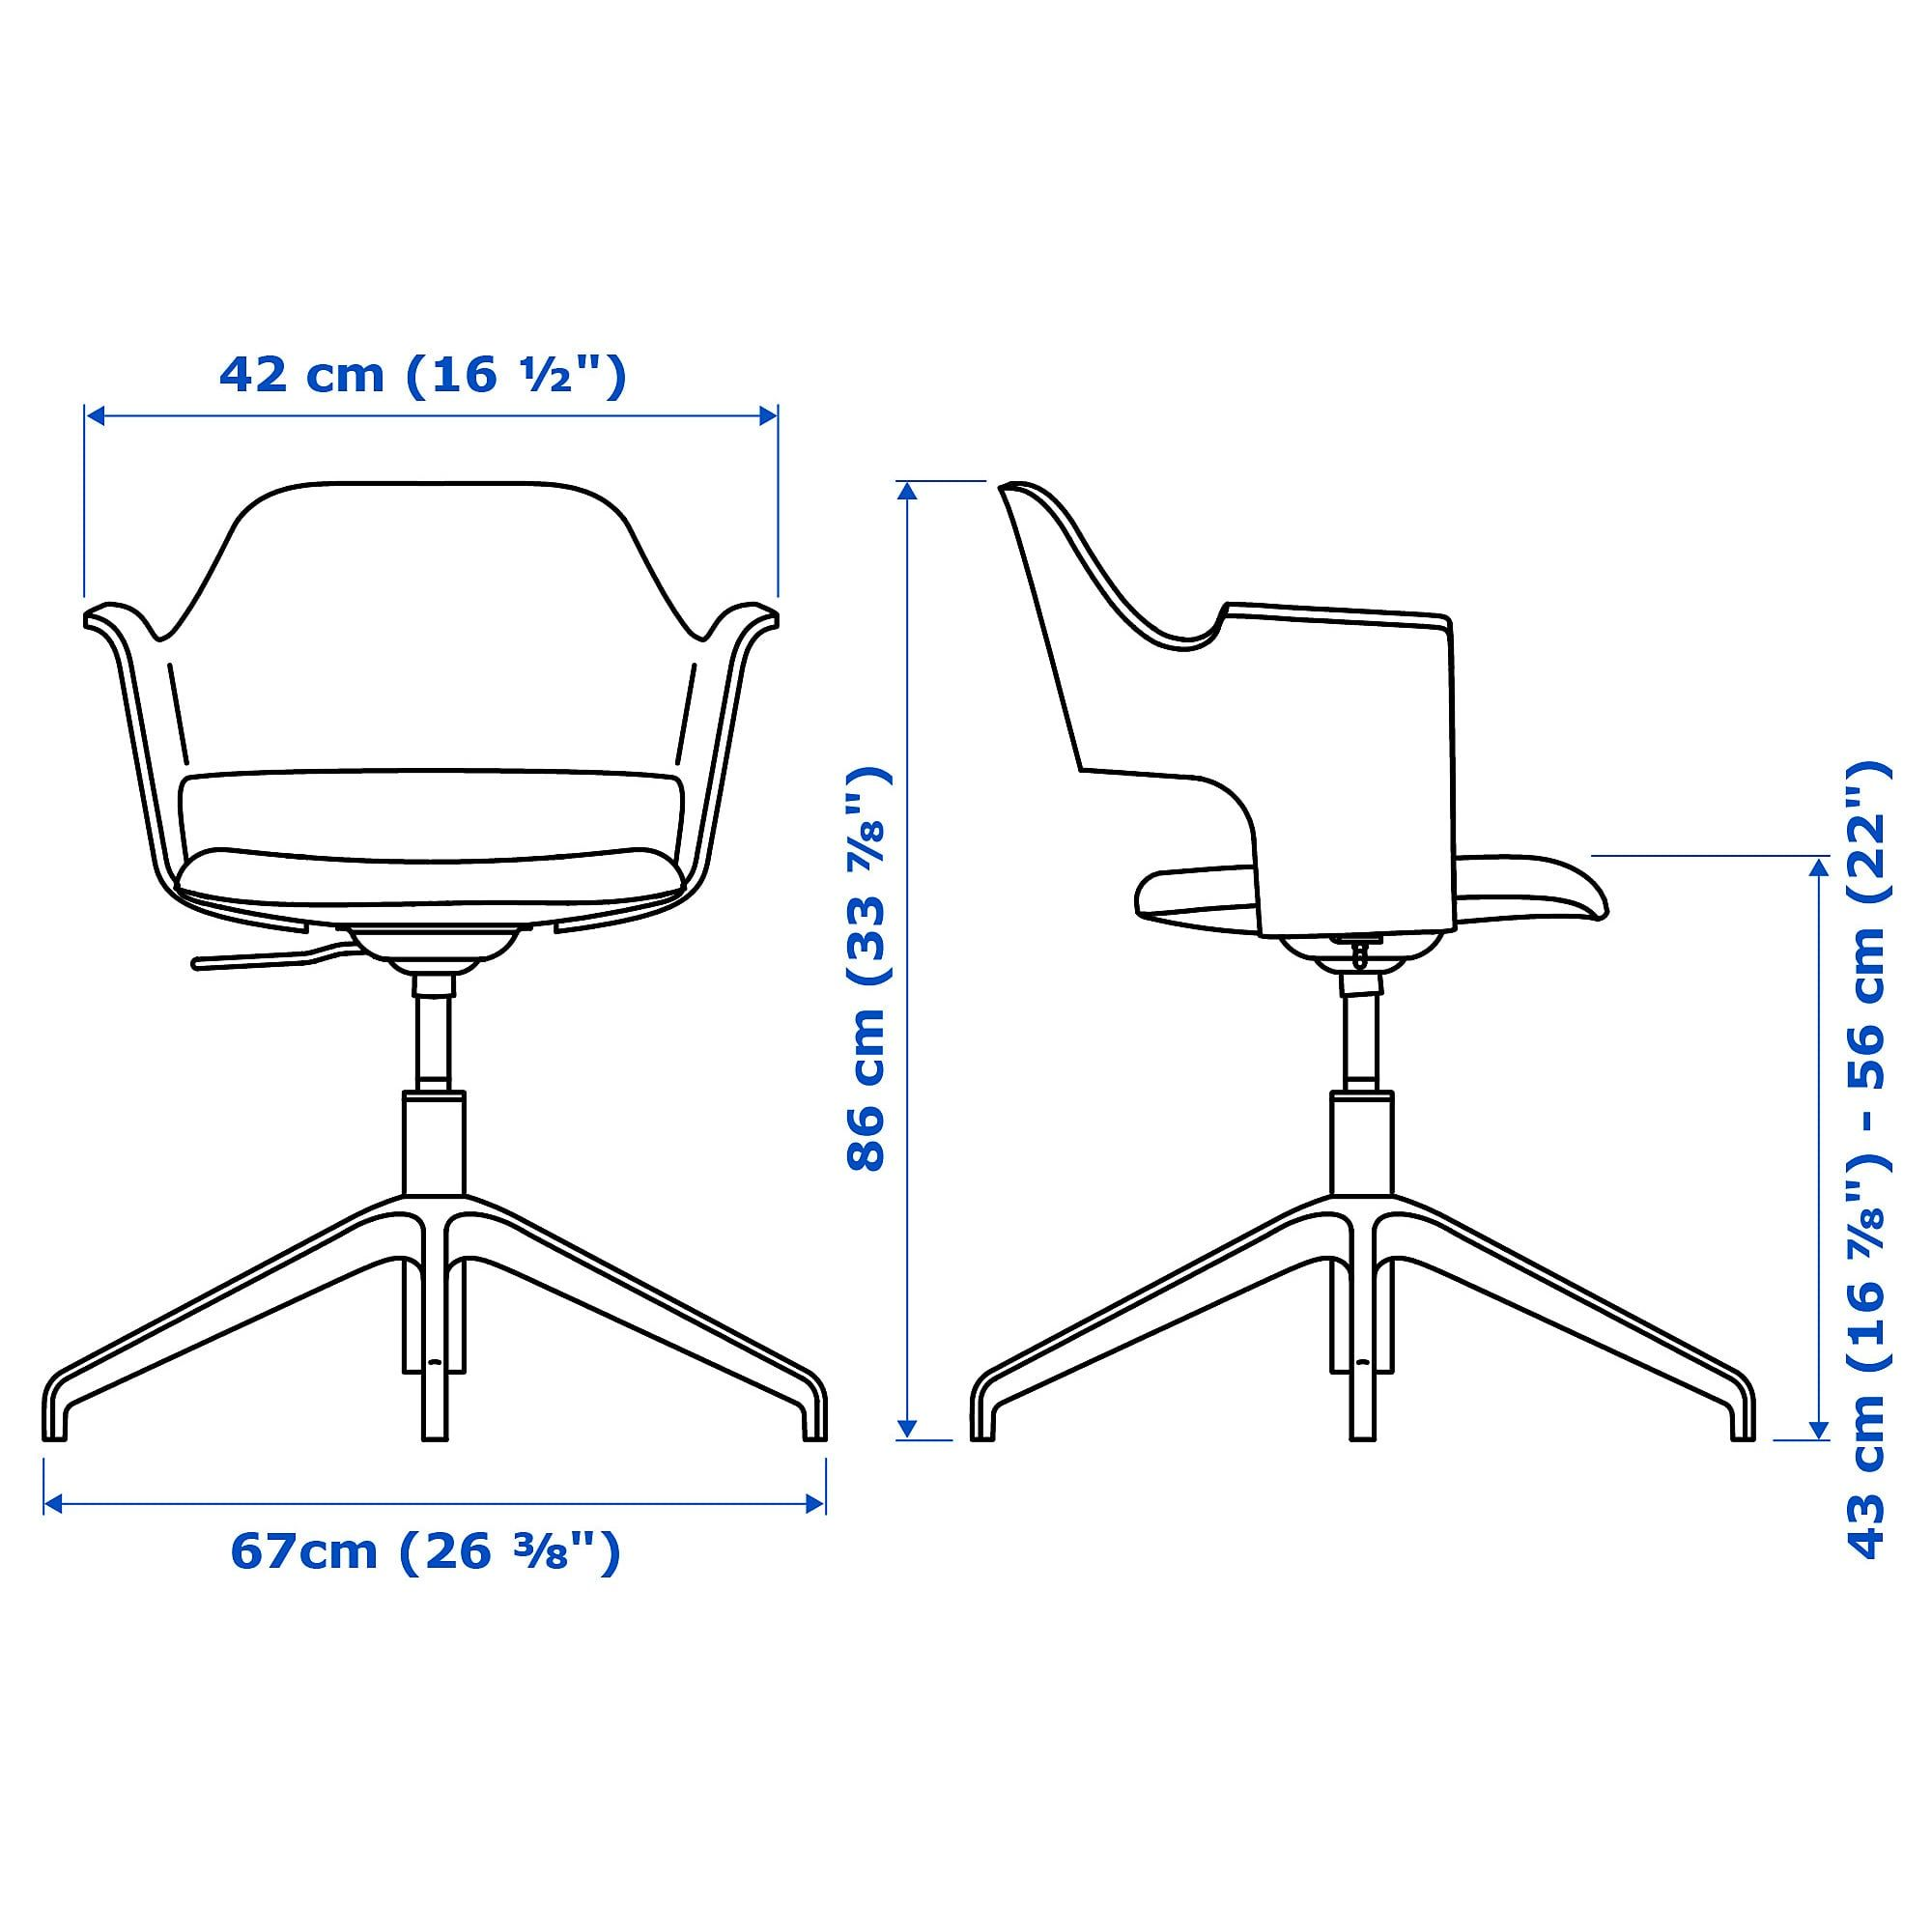 INGOLF Junior chair white (With images) Home kitchens